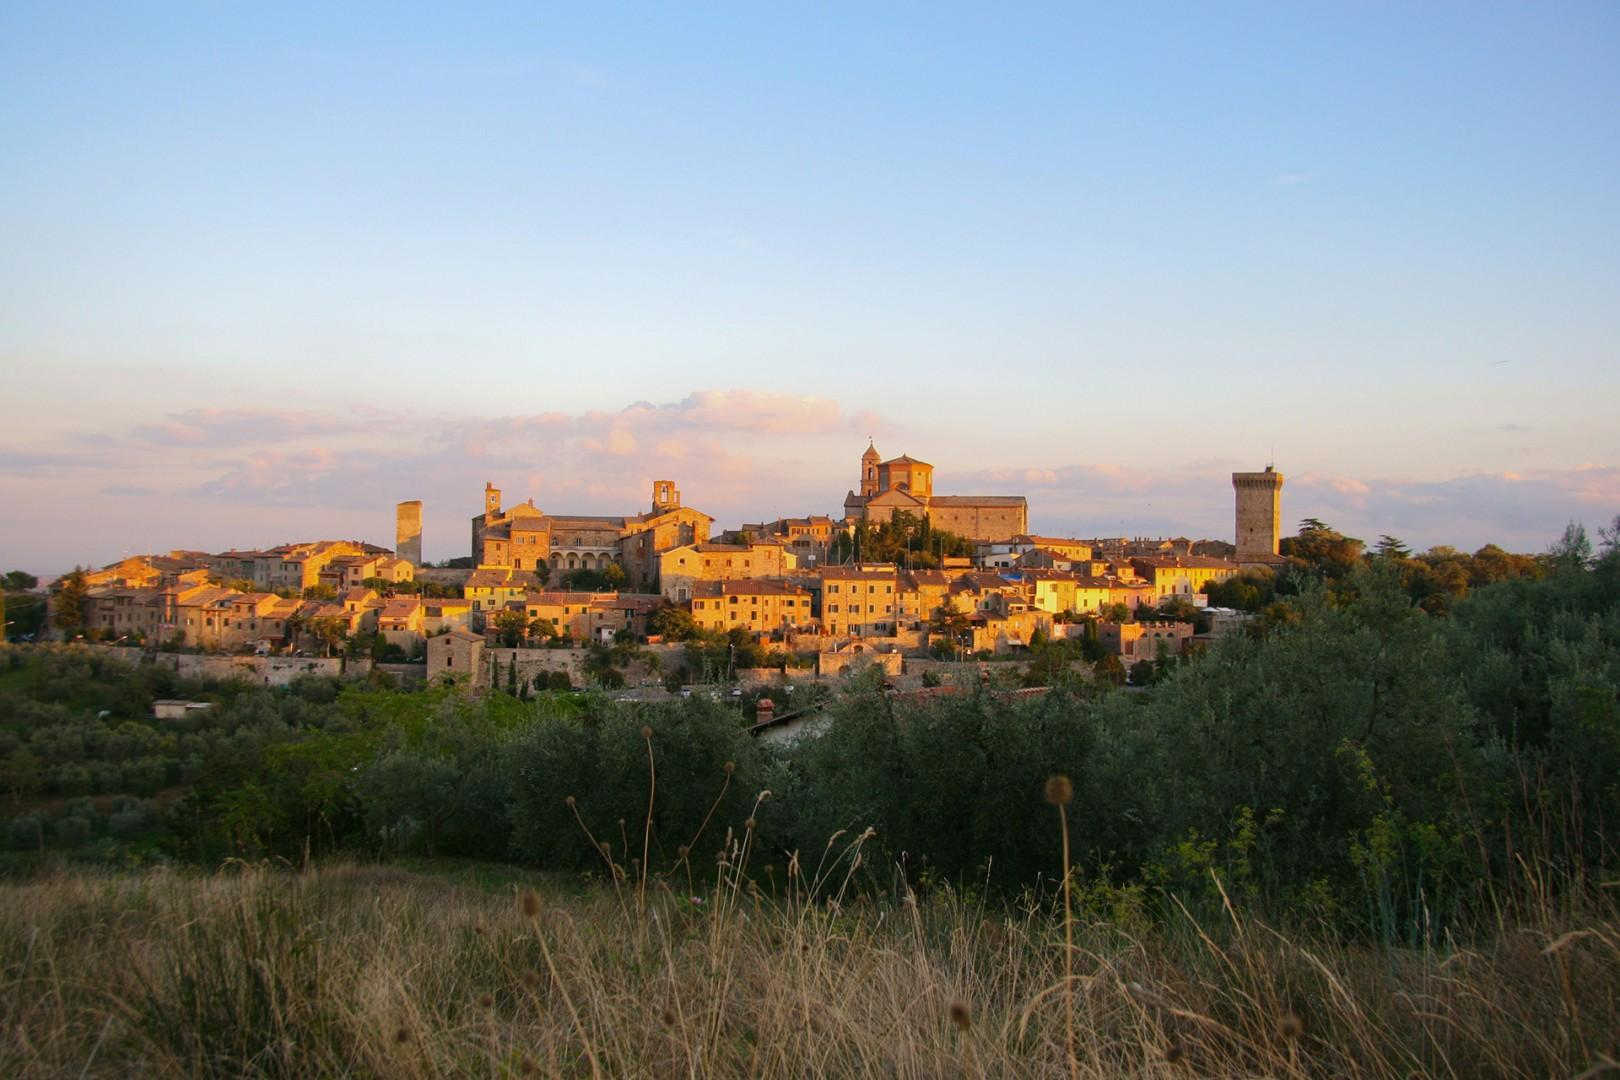 The villa is less than a mile from the remarkably preserved medieval hilltop town of Lucignano.